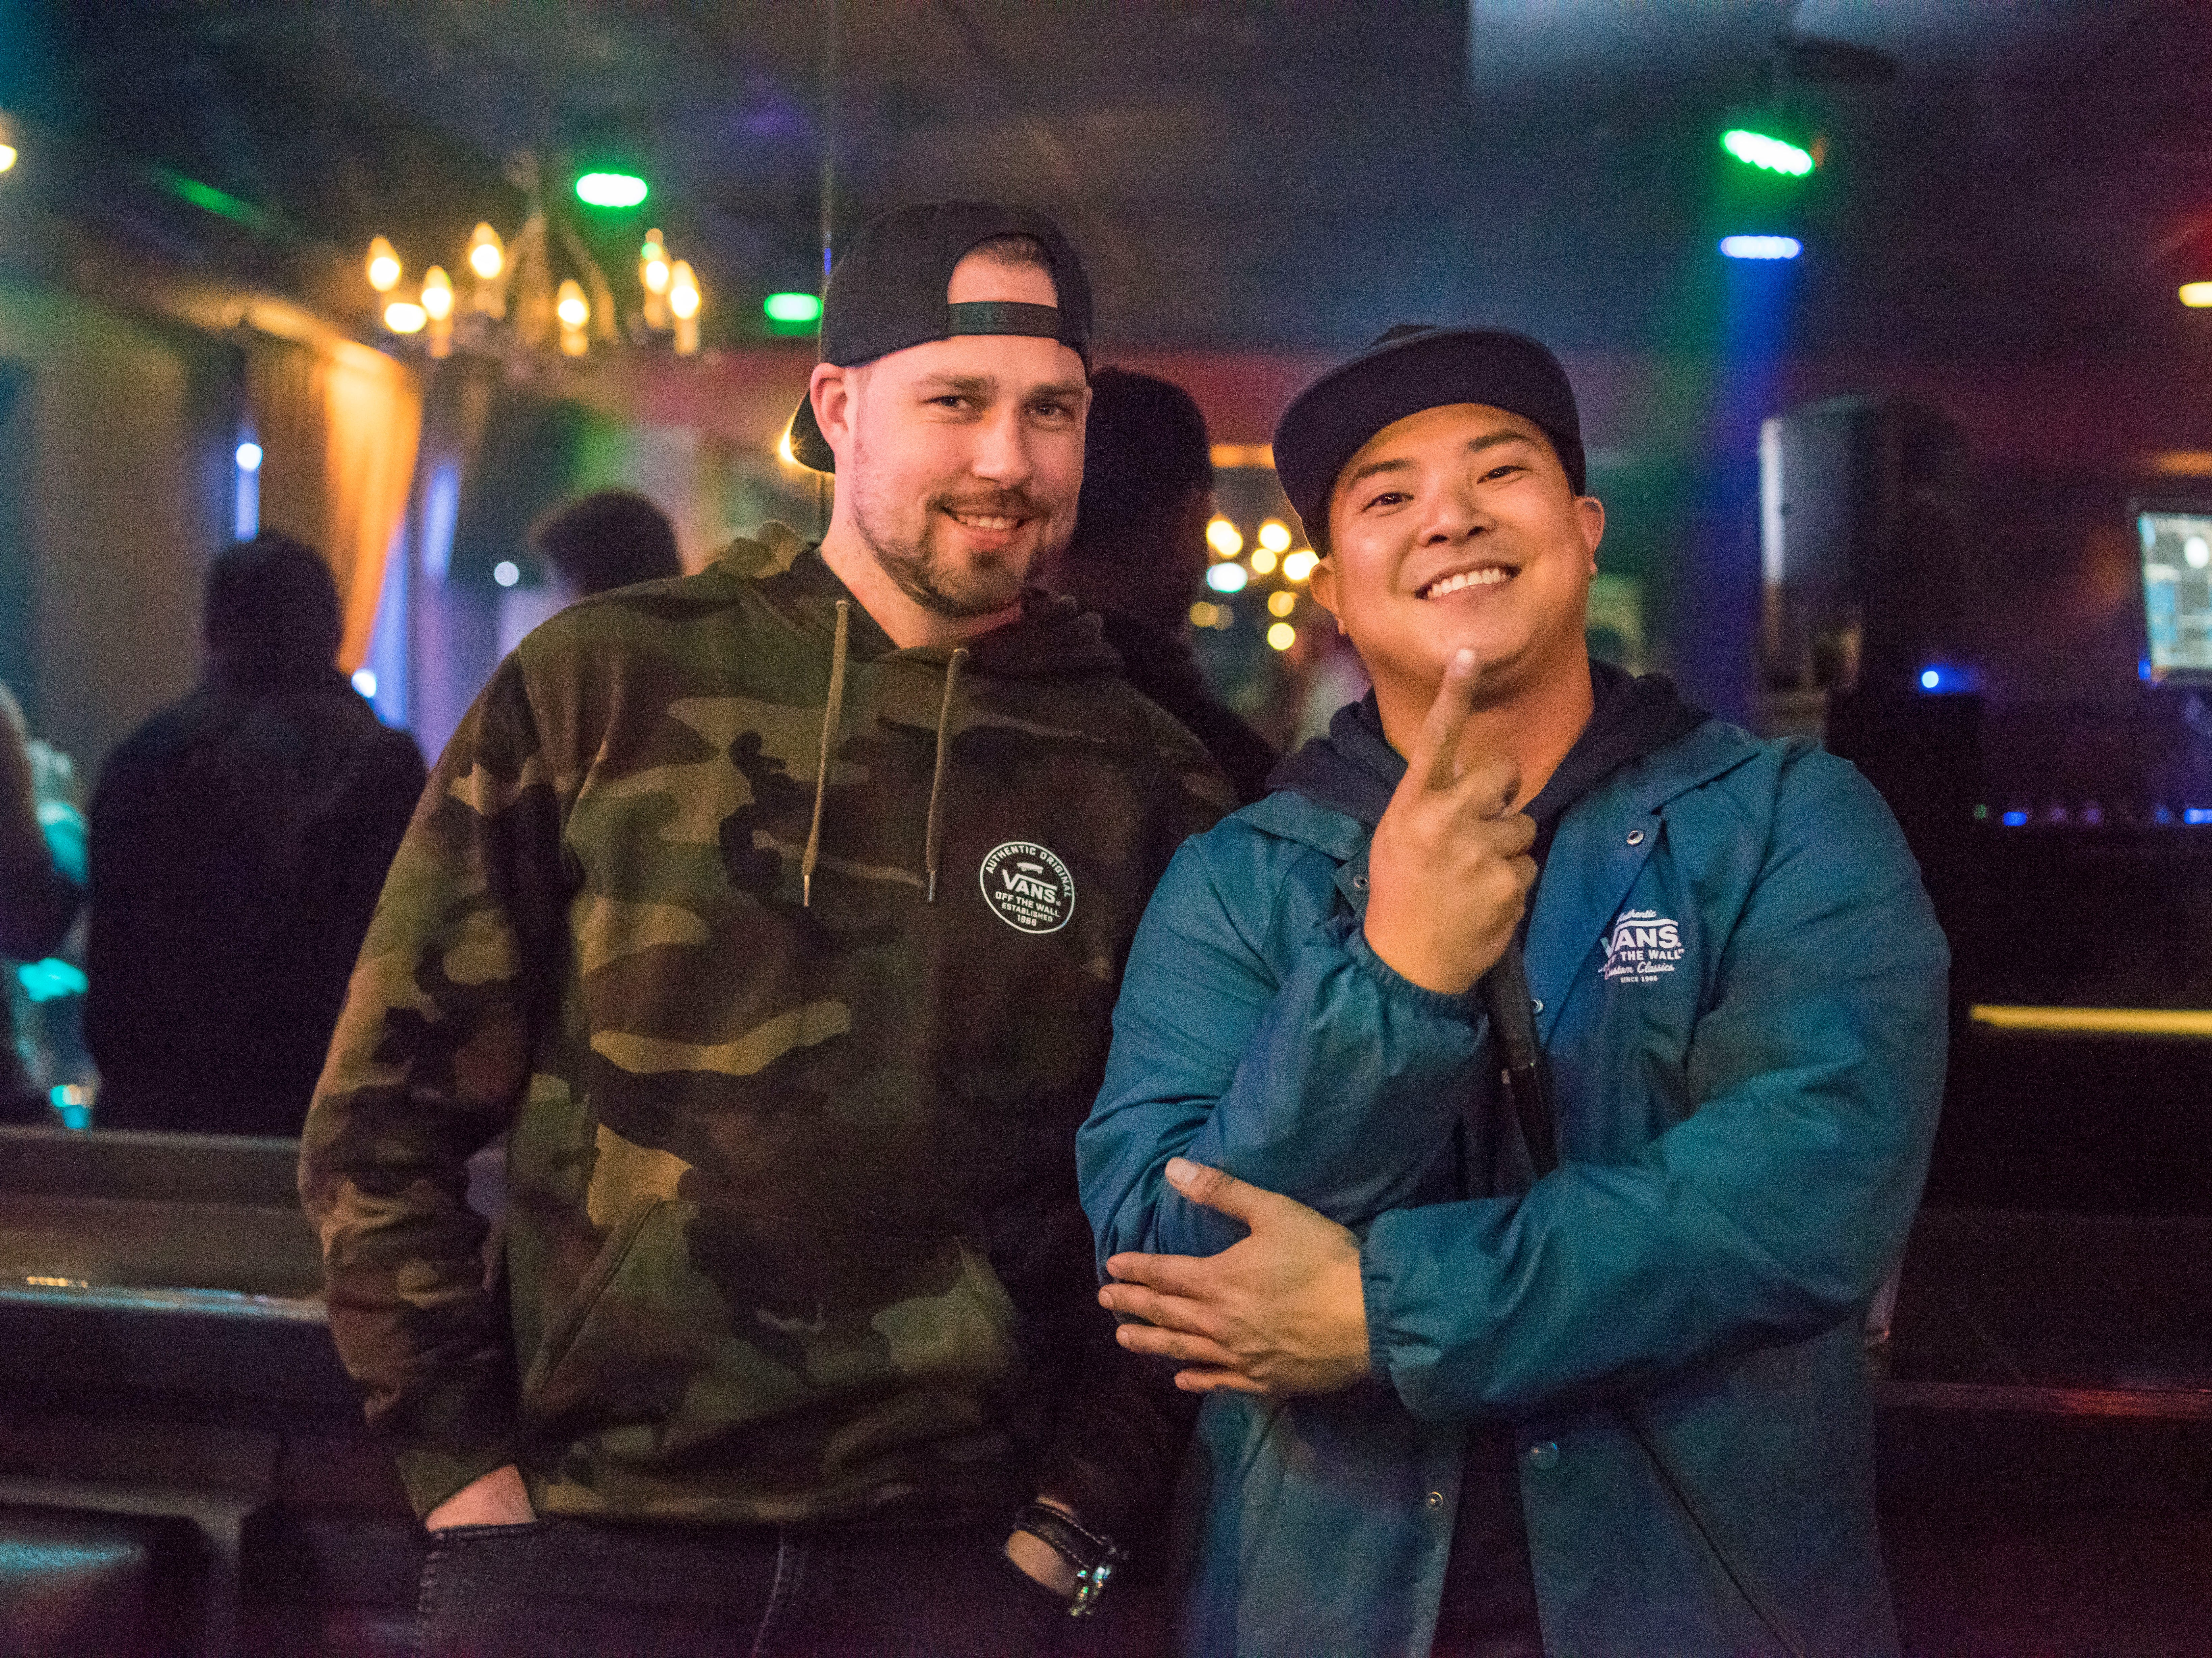 Chris Lo, 31, And Rob Fleming, 33, both of Des Moines, having a great time, Friday, March 15th, at Voodoo Lounge.